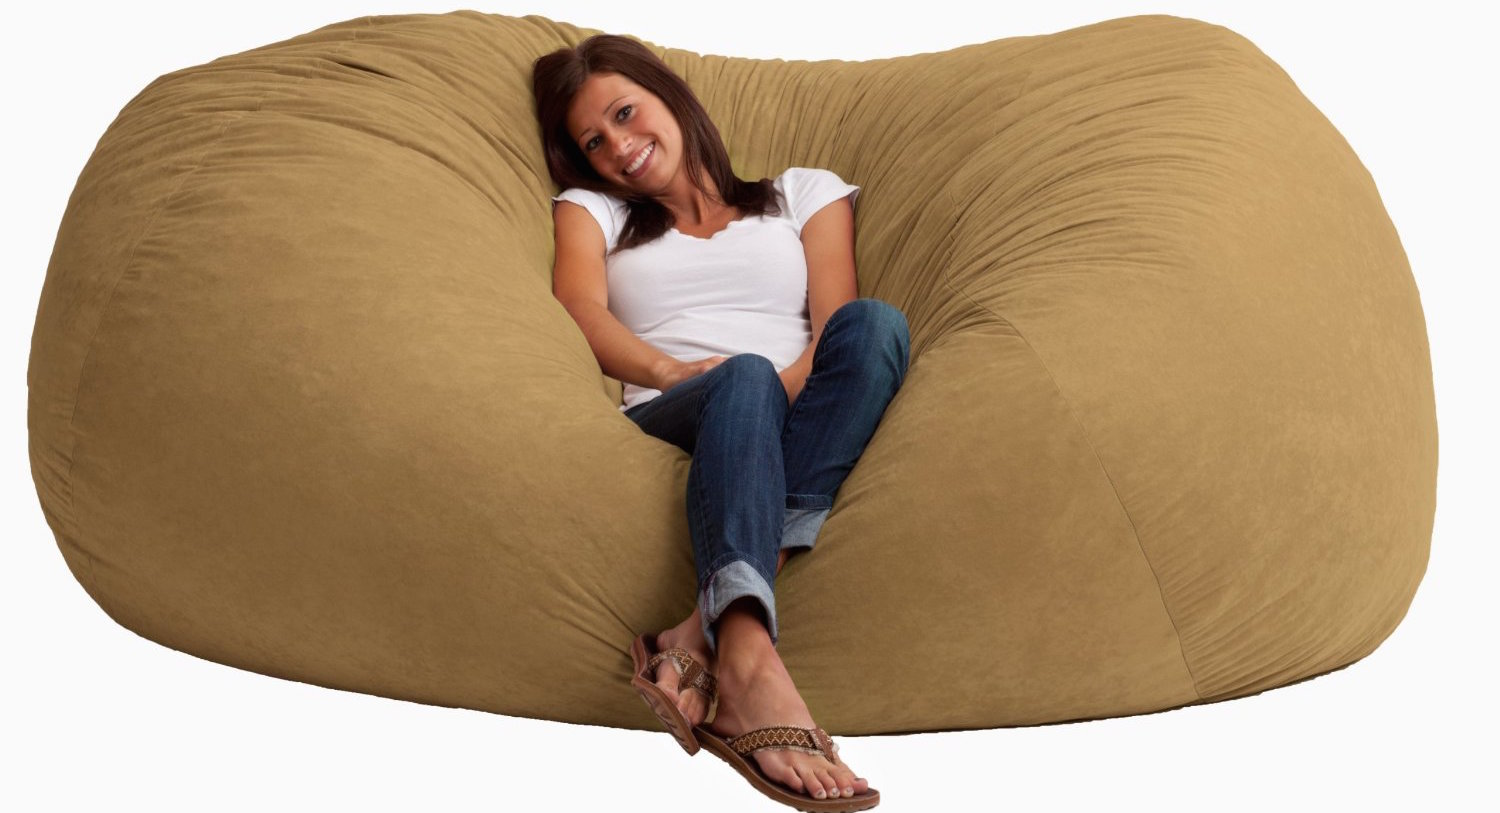 Awesome Its About Time You Had A Big Comfy Bean Bag Chair In Your Evergreenethics Interior Chair Design Evergreenethicsorg